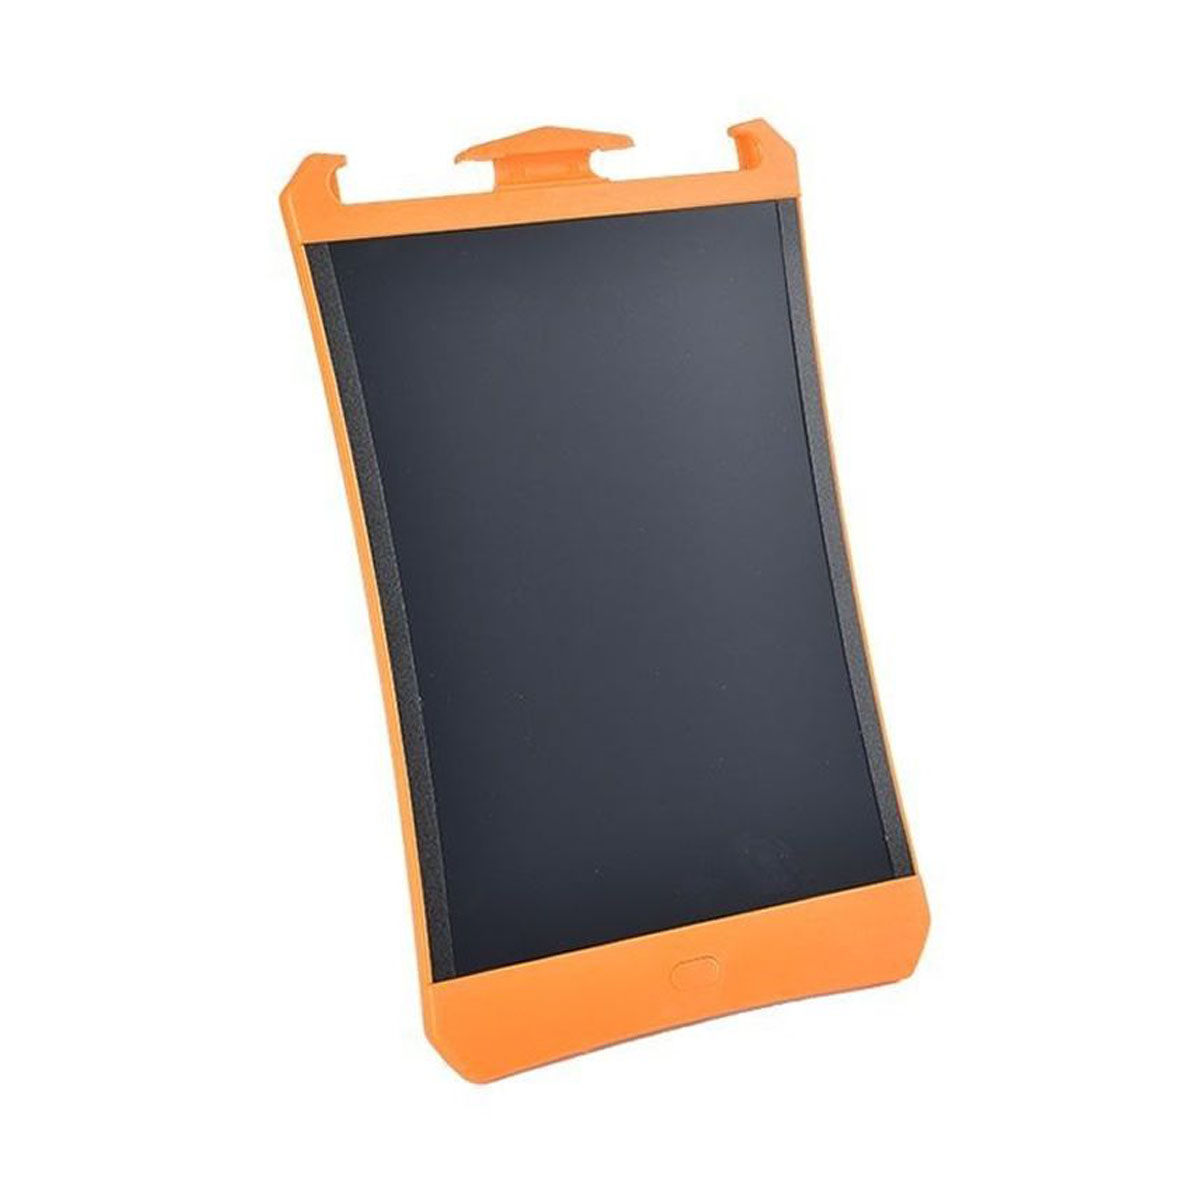 Mini Digital Slate Leotec Sketchboard Thick Eight Orange 8.5 With Stroke Thick LCD Screen Stylus Pen Included ImÁ